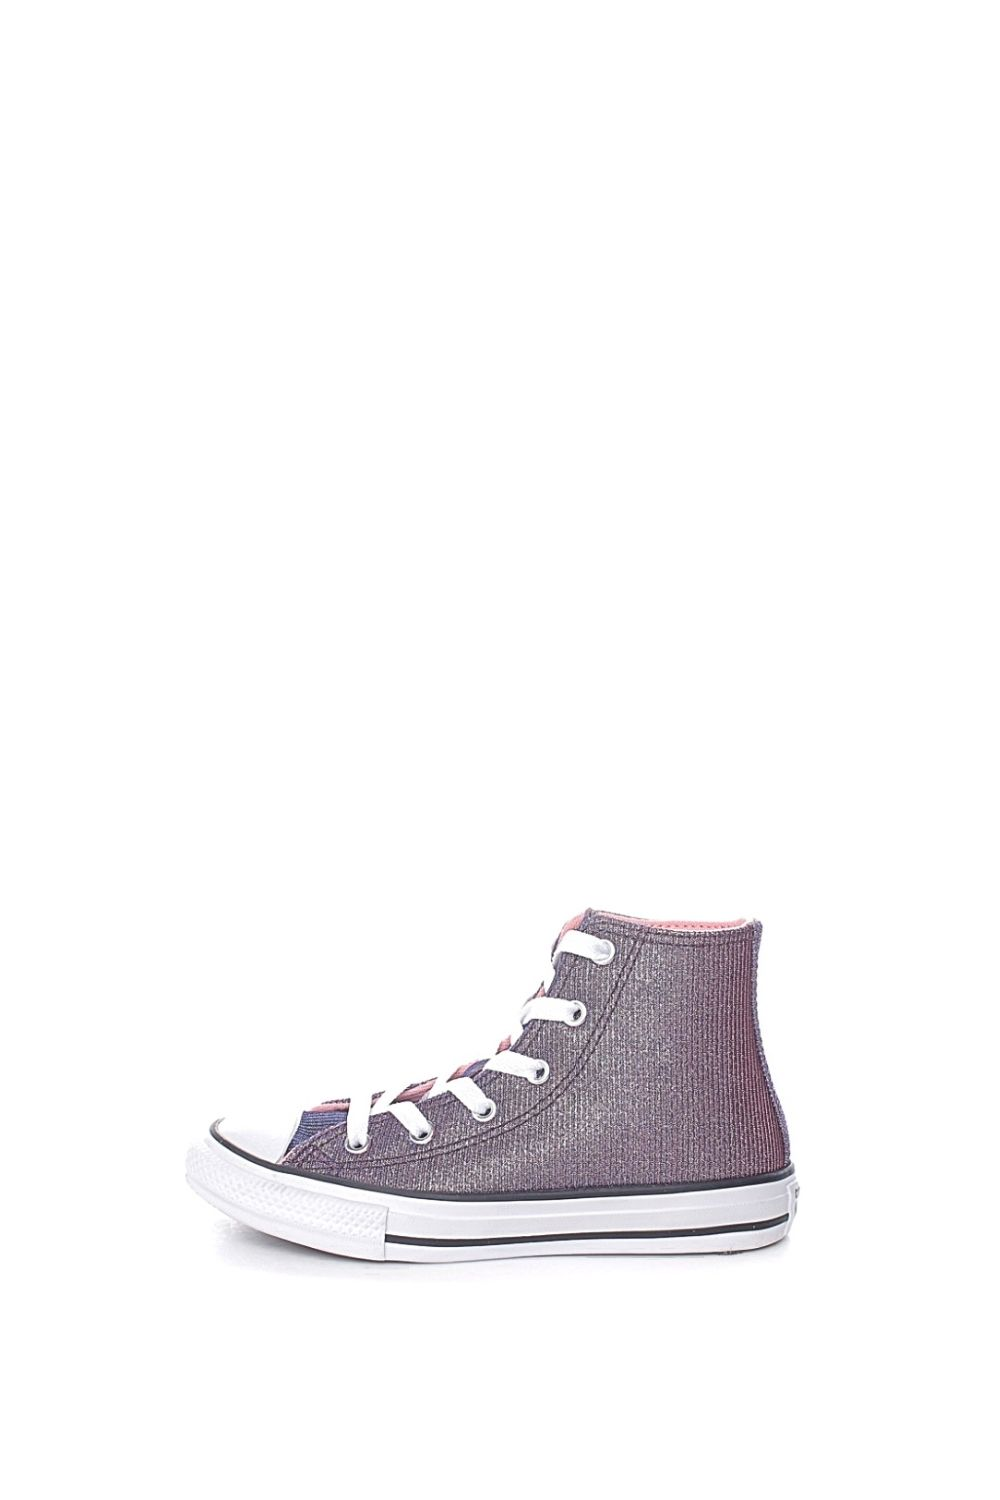 CONVERSE – Παιδικά μποτάκια sneakers CONVERSE CHUCK TAYLOR ALL STAR μωβ